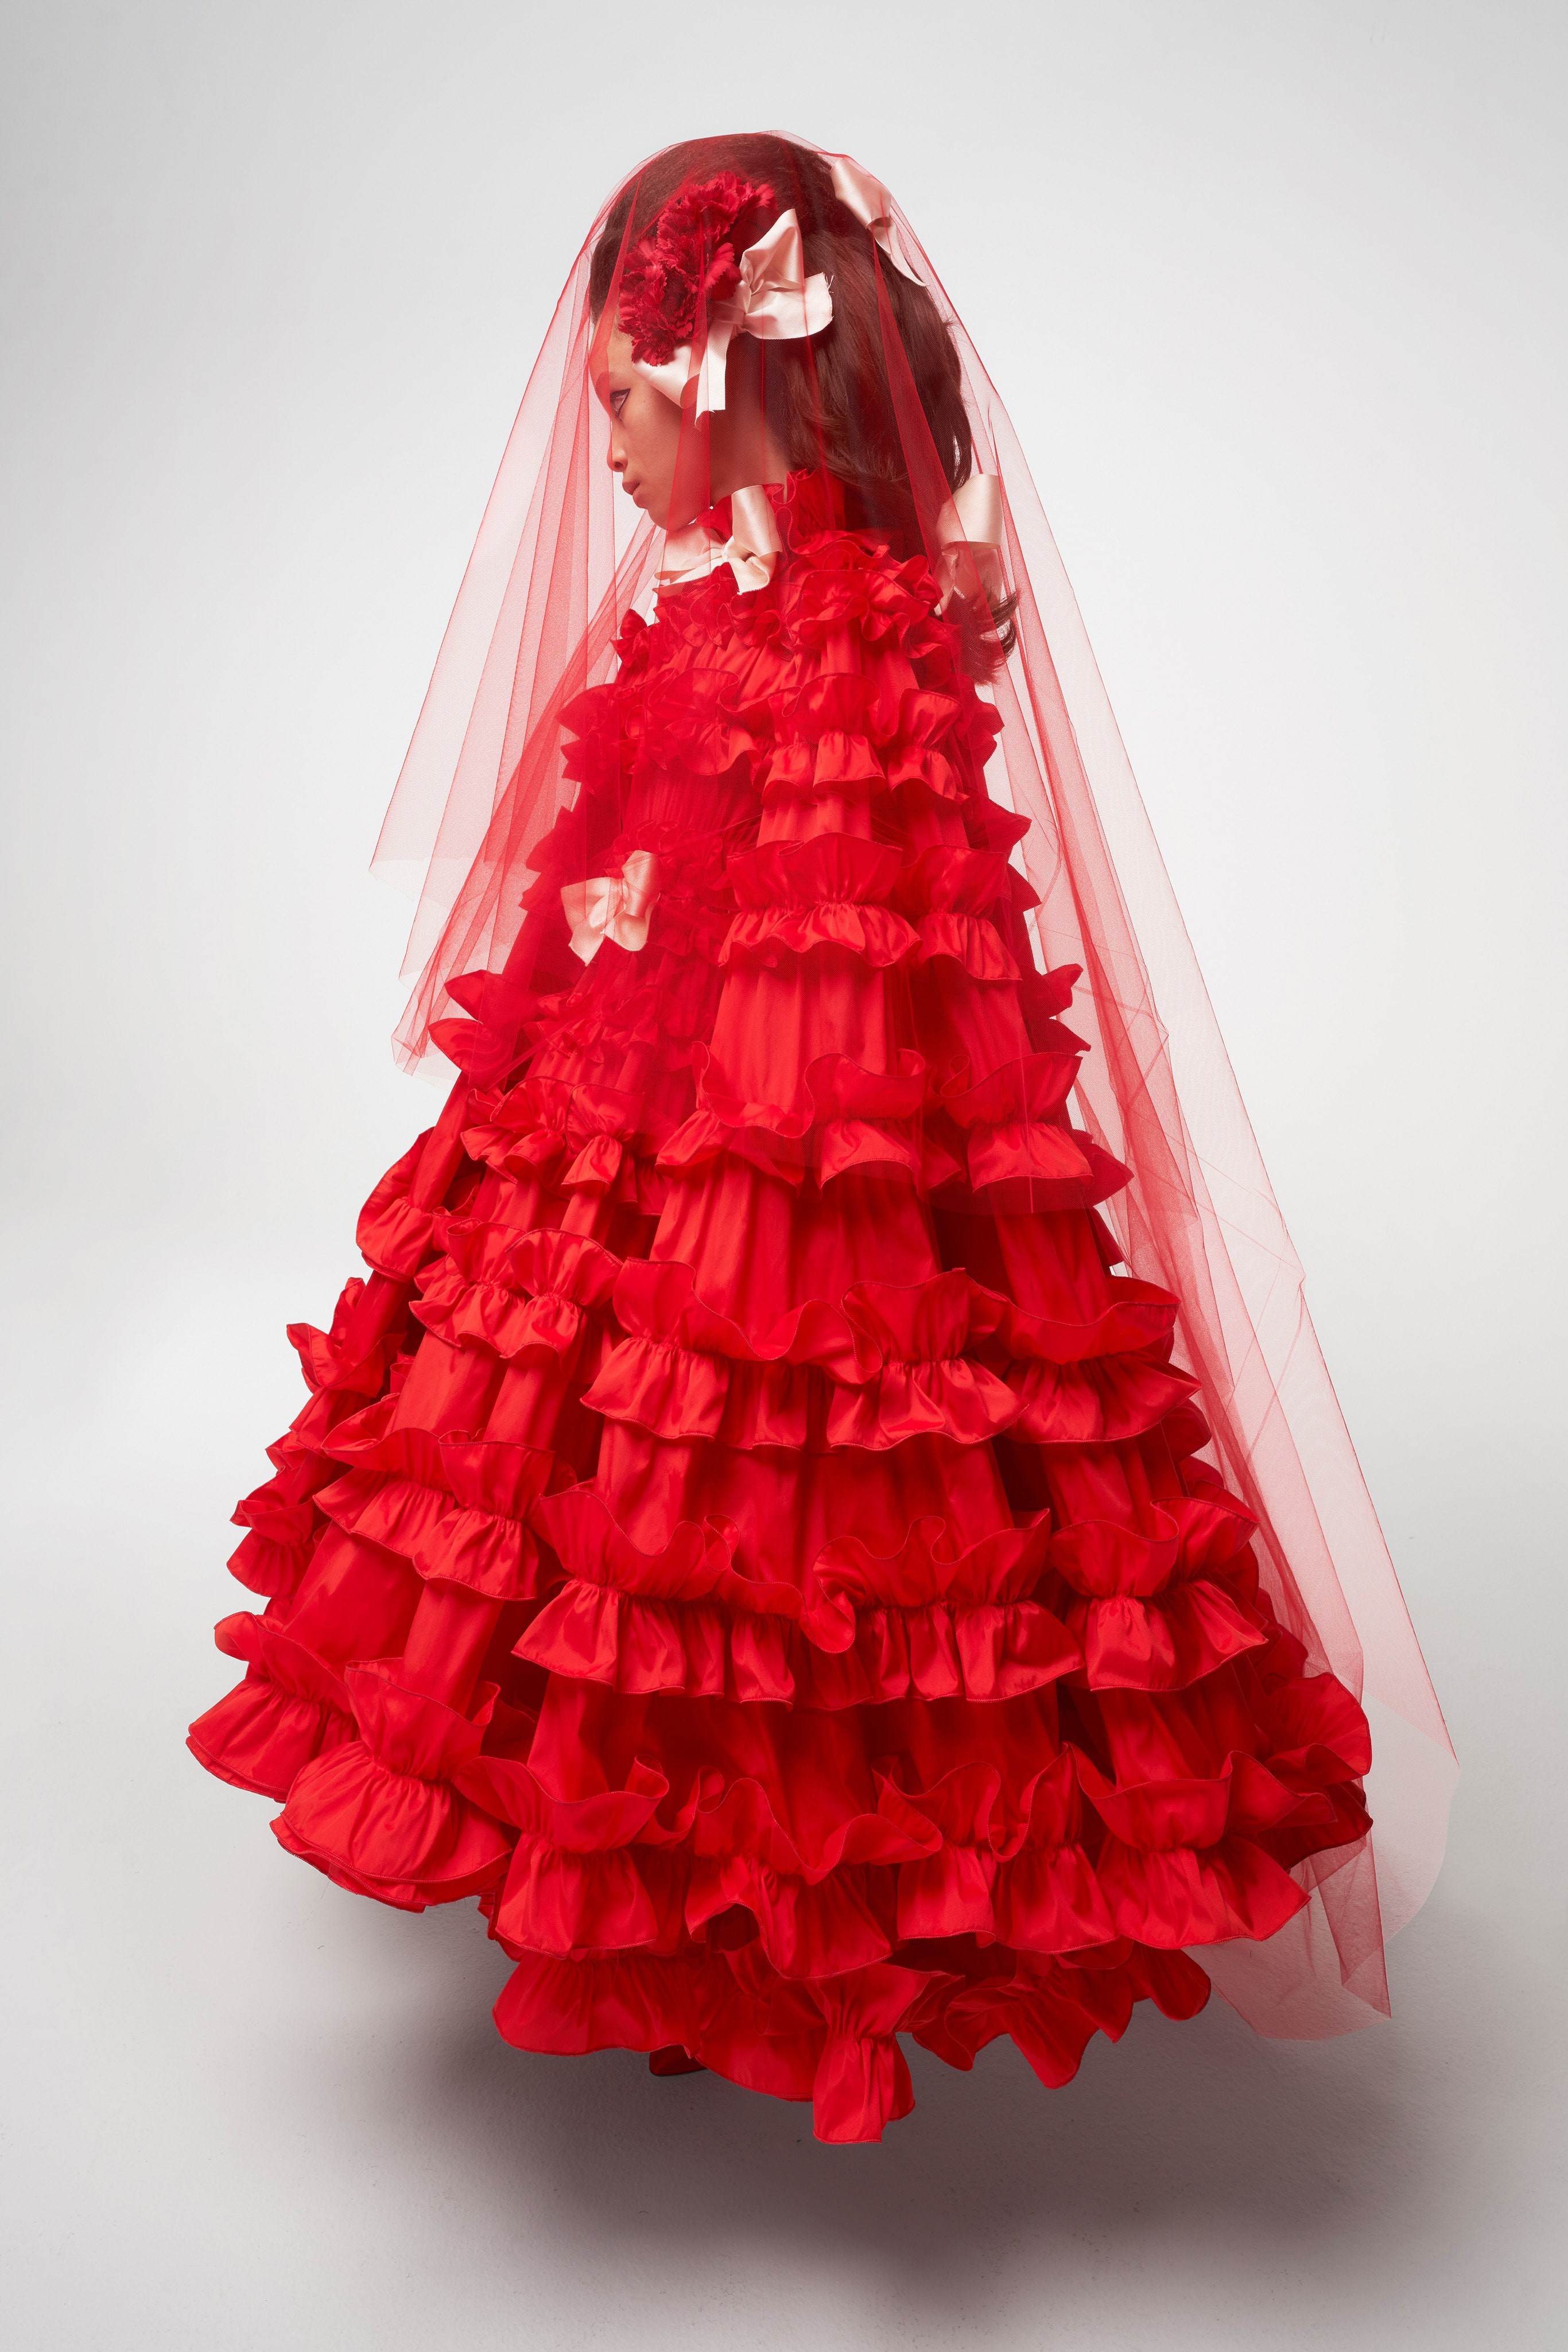 Giambattista Valli Spring 2021 Couture. A lady wearing a voluminous ruffled red gown and a sheer red veil over her head.